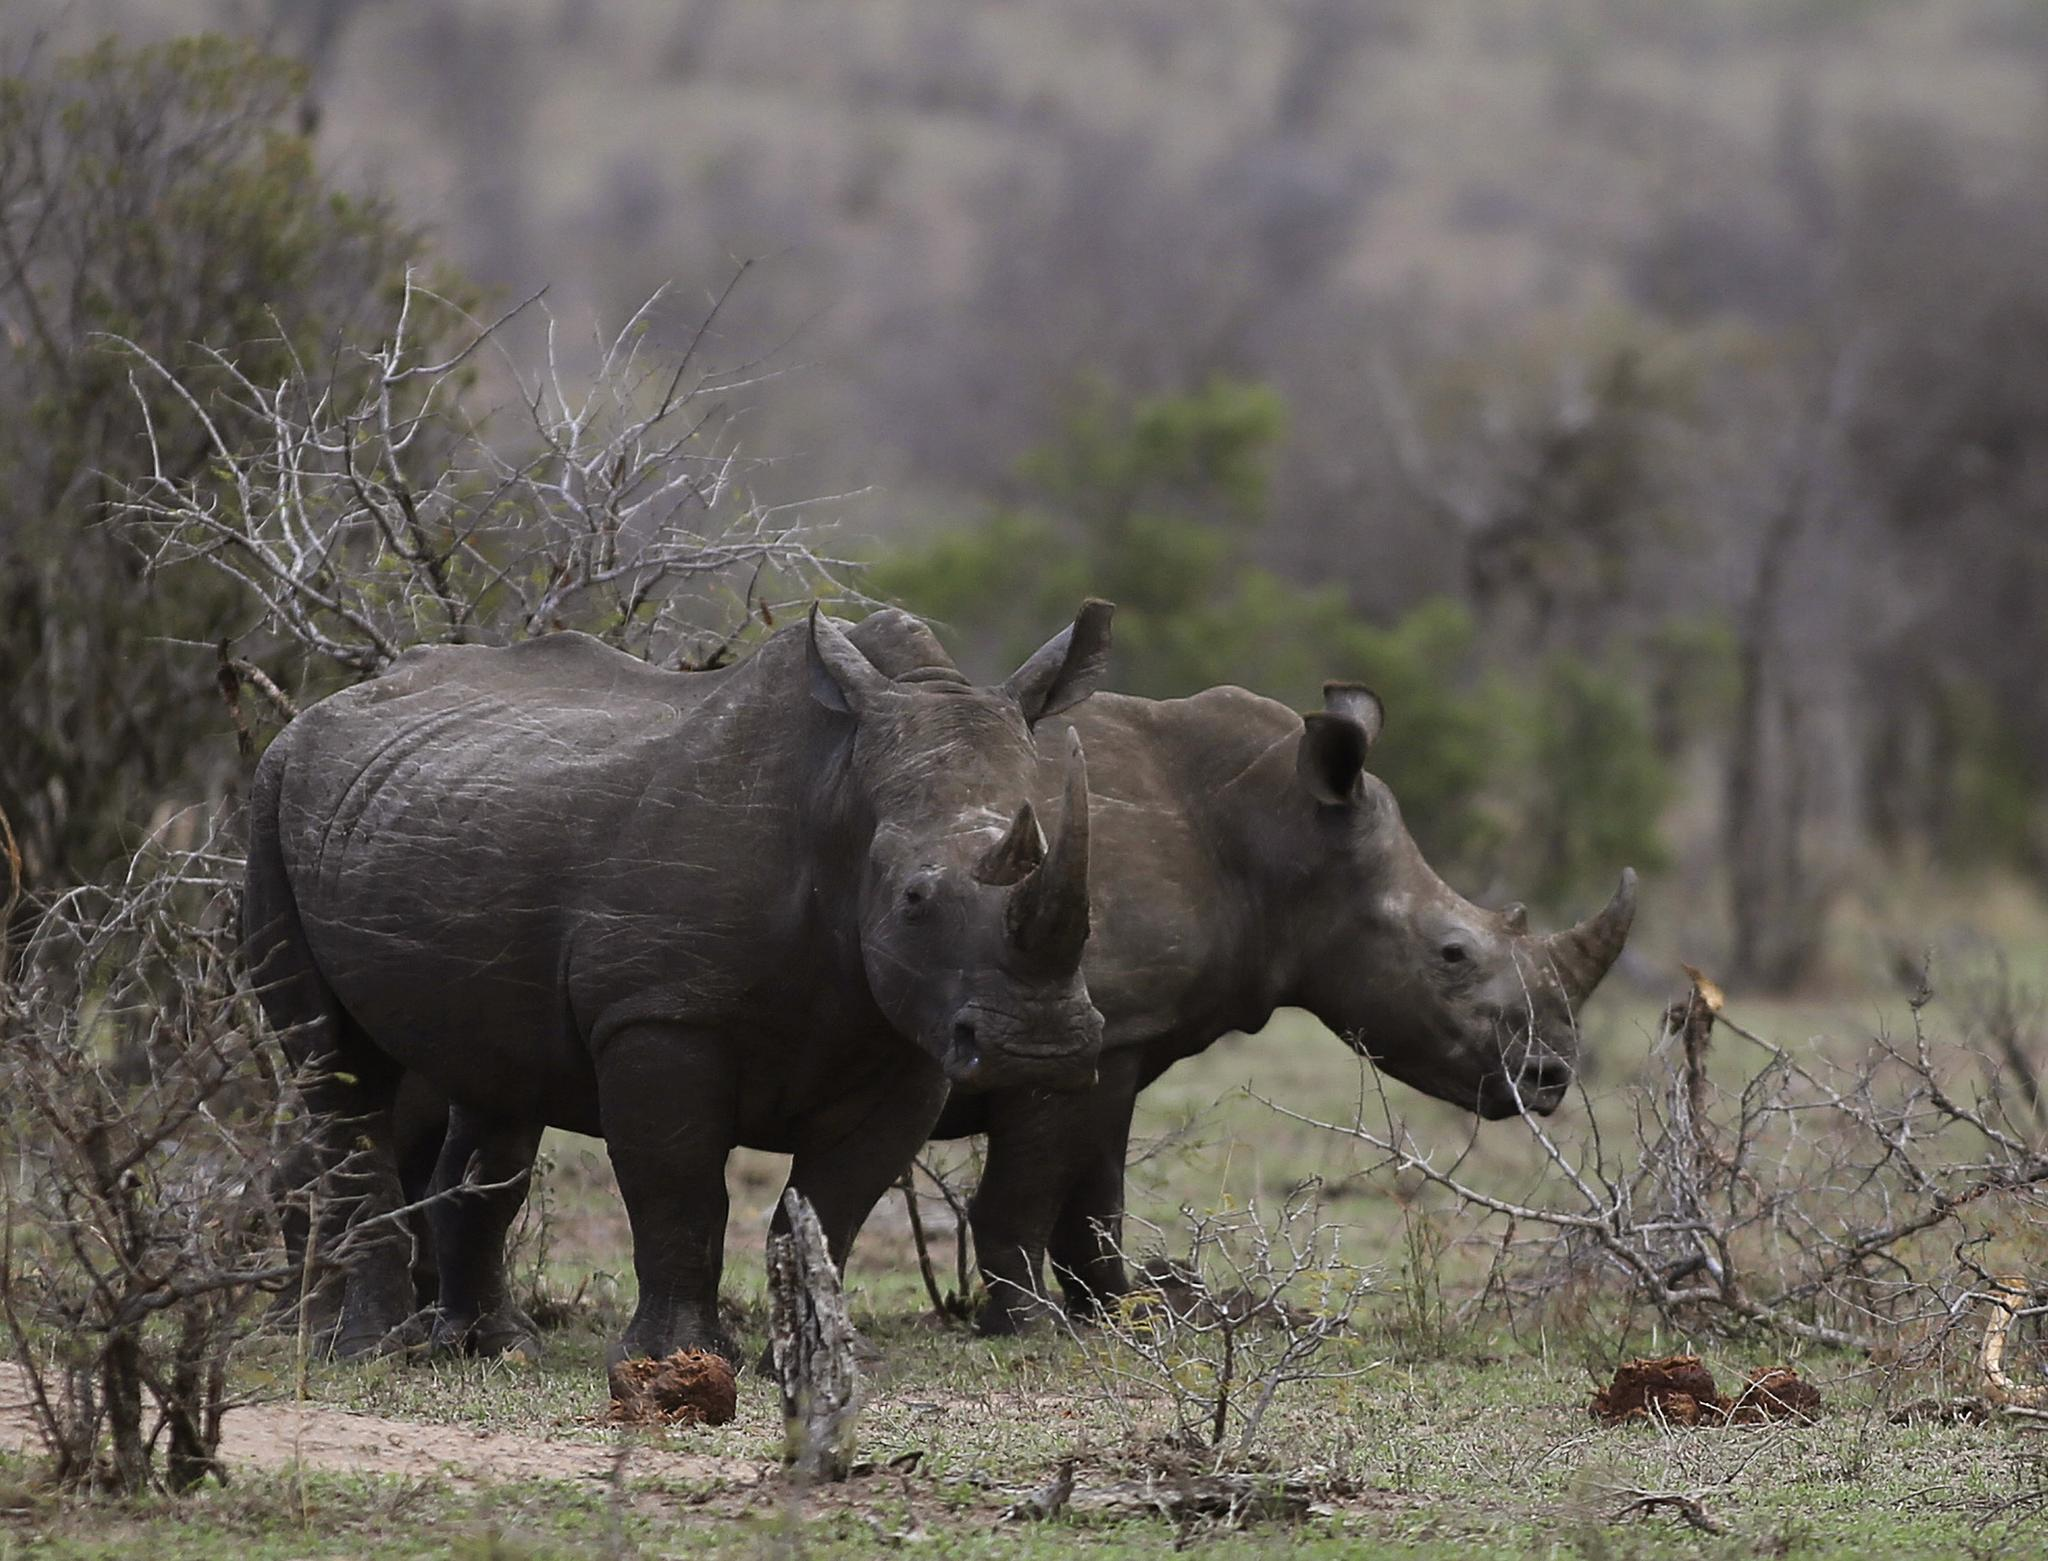 Rhinos graze in the bush on the edge of Kruger National Park in South Africa, October 1. In South Africa, rhinos are worth more dead than alive.